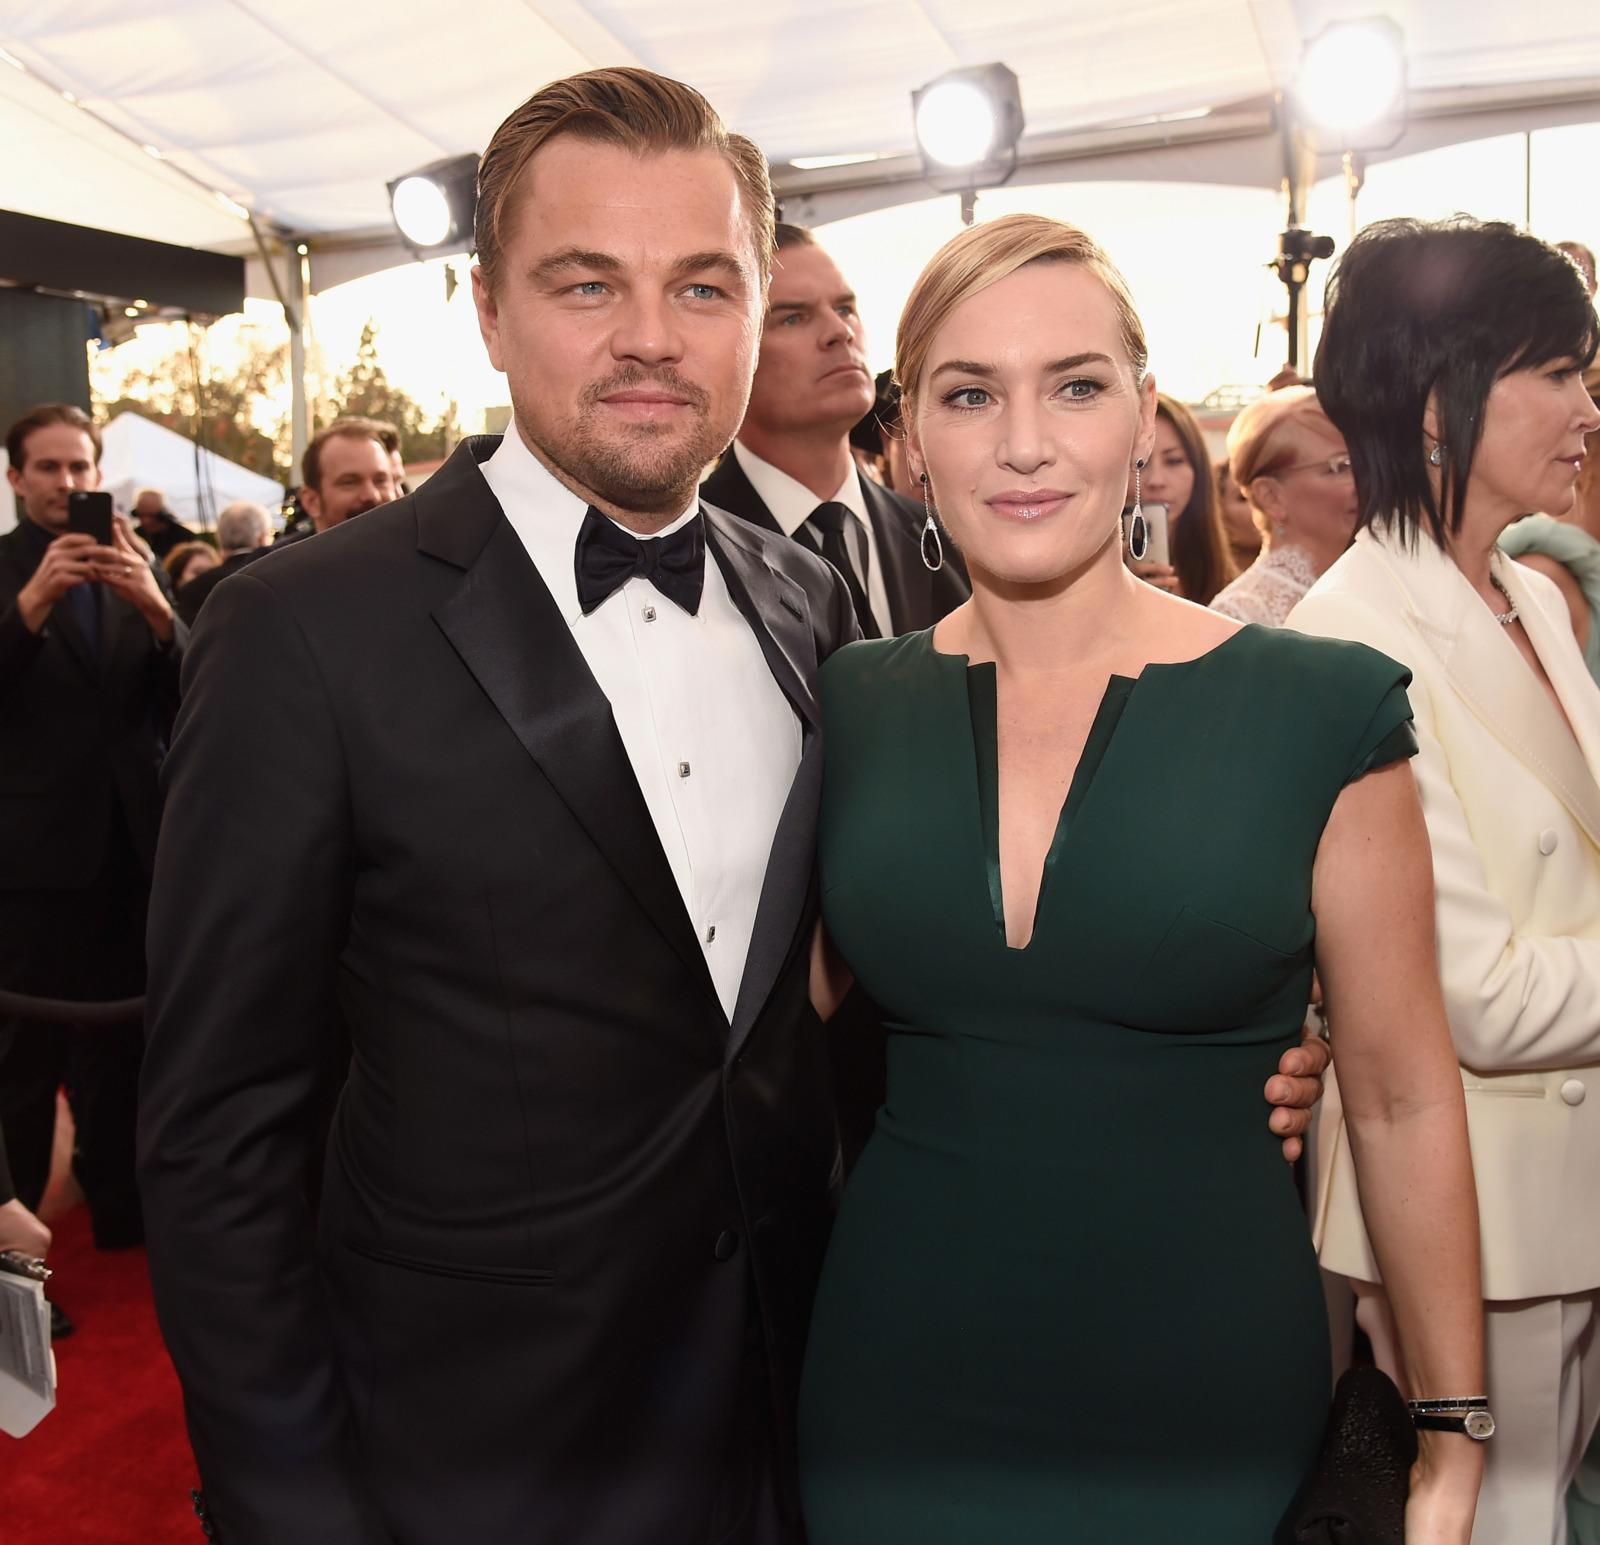 Kate Winslet Won't Boycott the Oscars Because Her Heart Will Go on for Leo